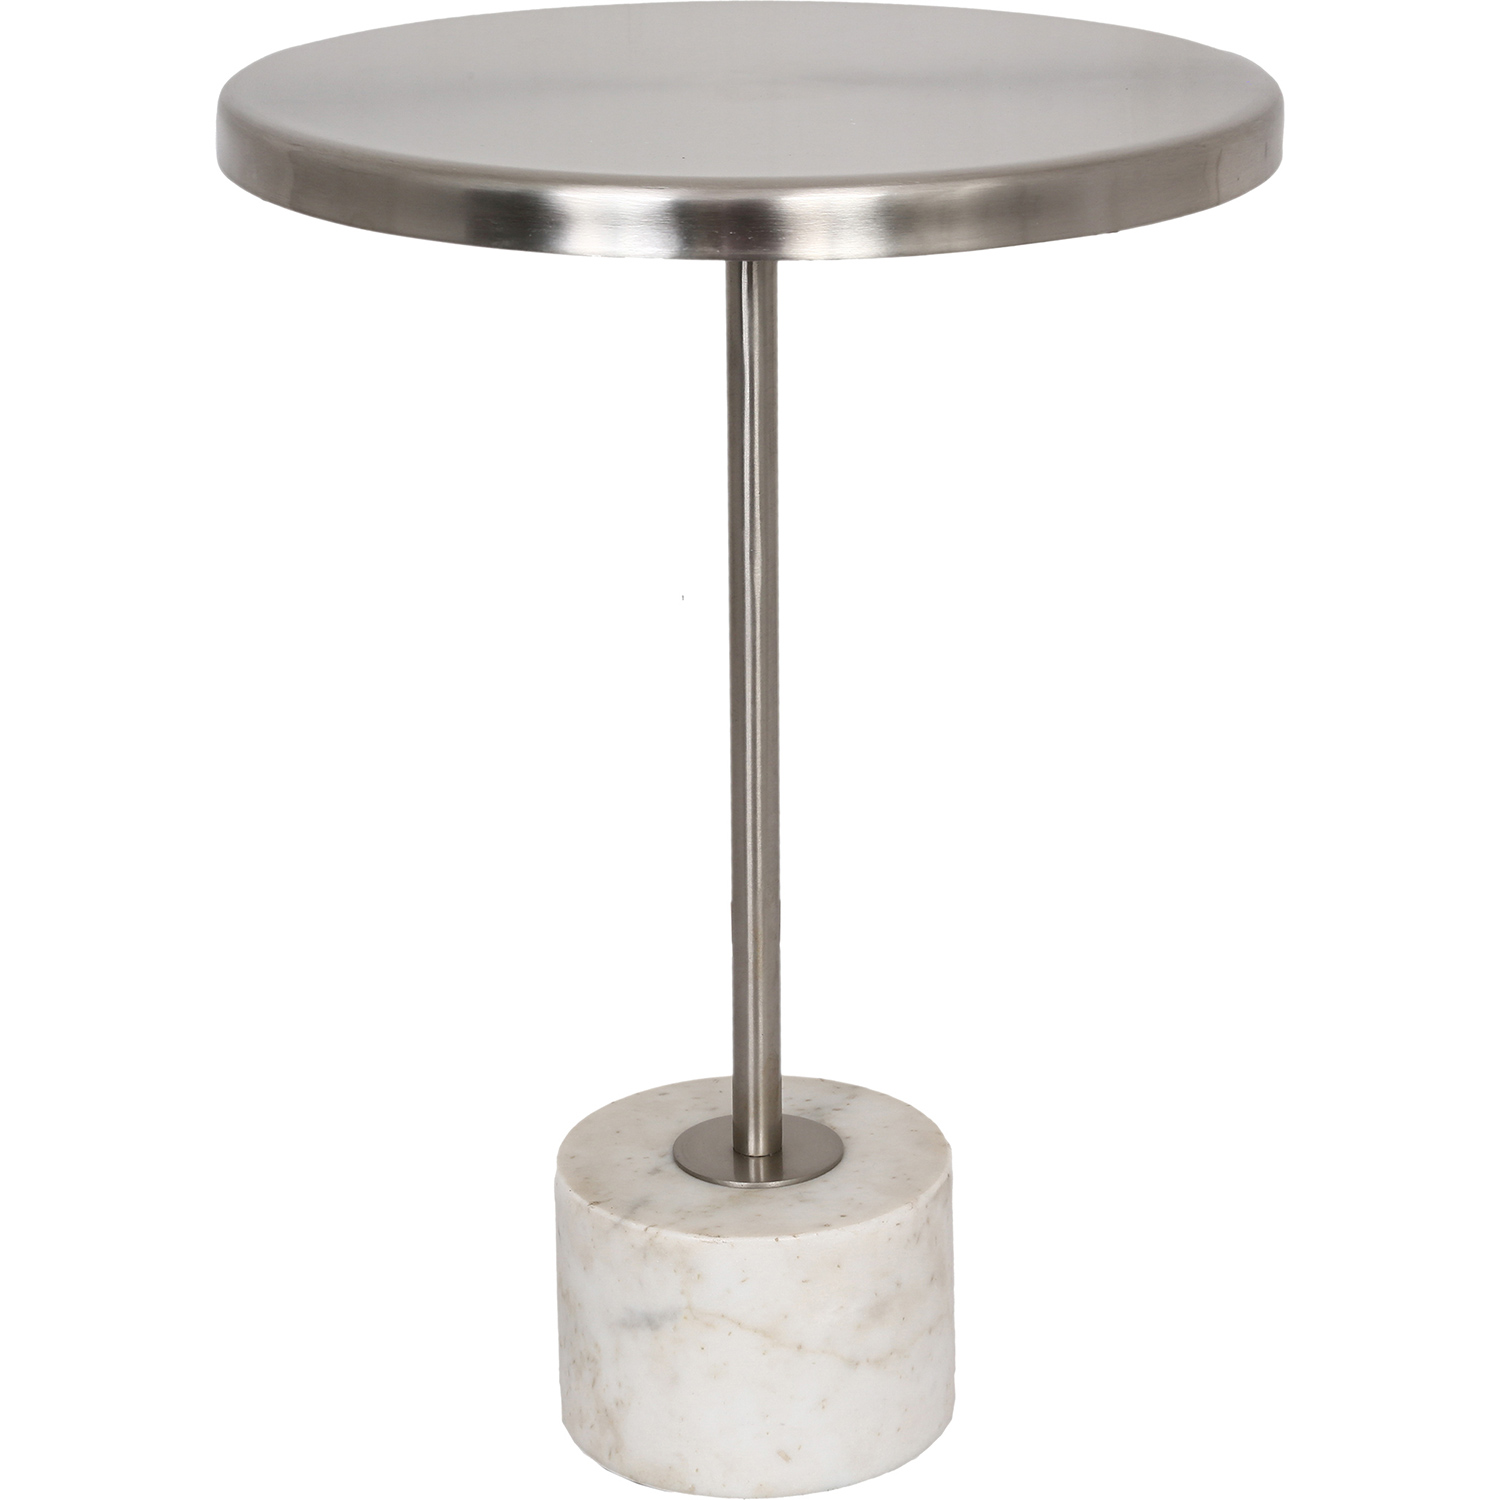 Ren-Wil Birley Accent Table - Pewter Top/White Marble Base